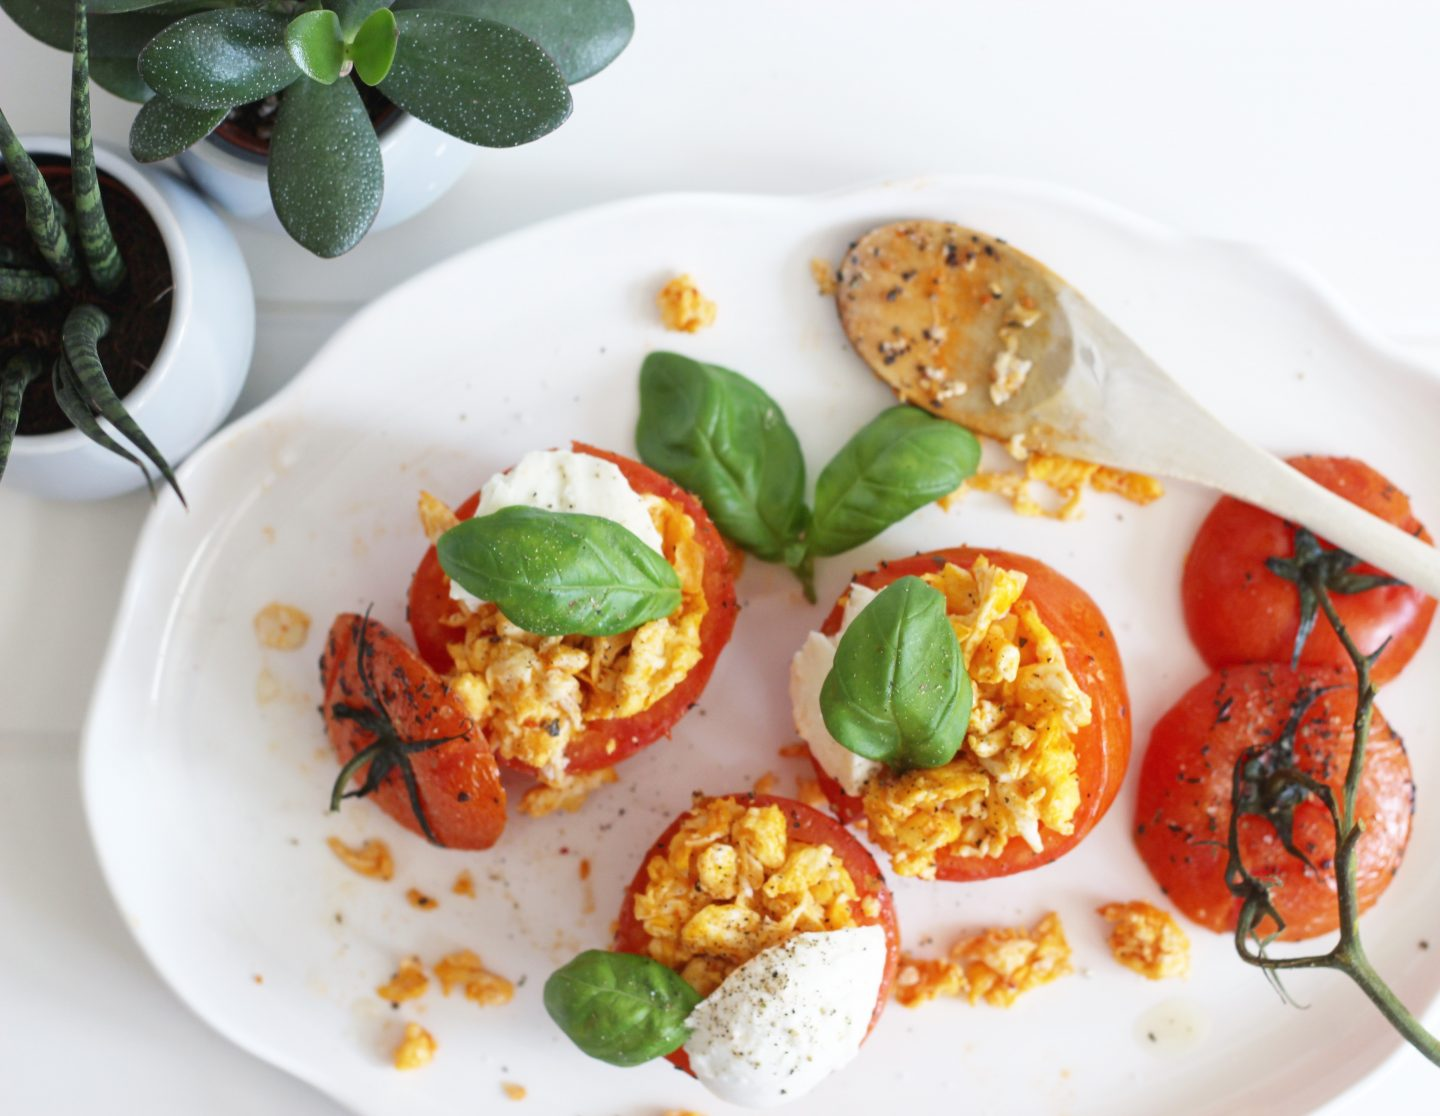 Lowcarb Paas recept – Tomaten met scrambled eggs, pesto en buffel mozzarella